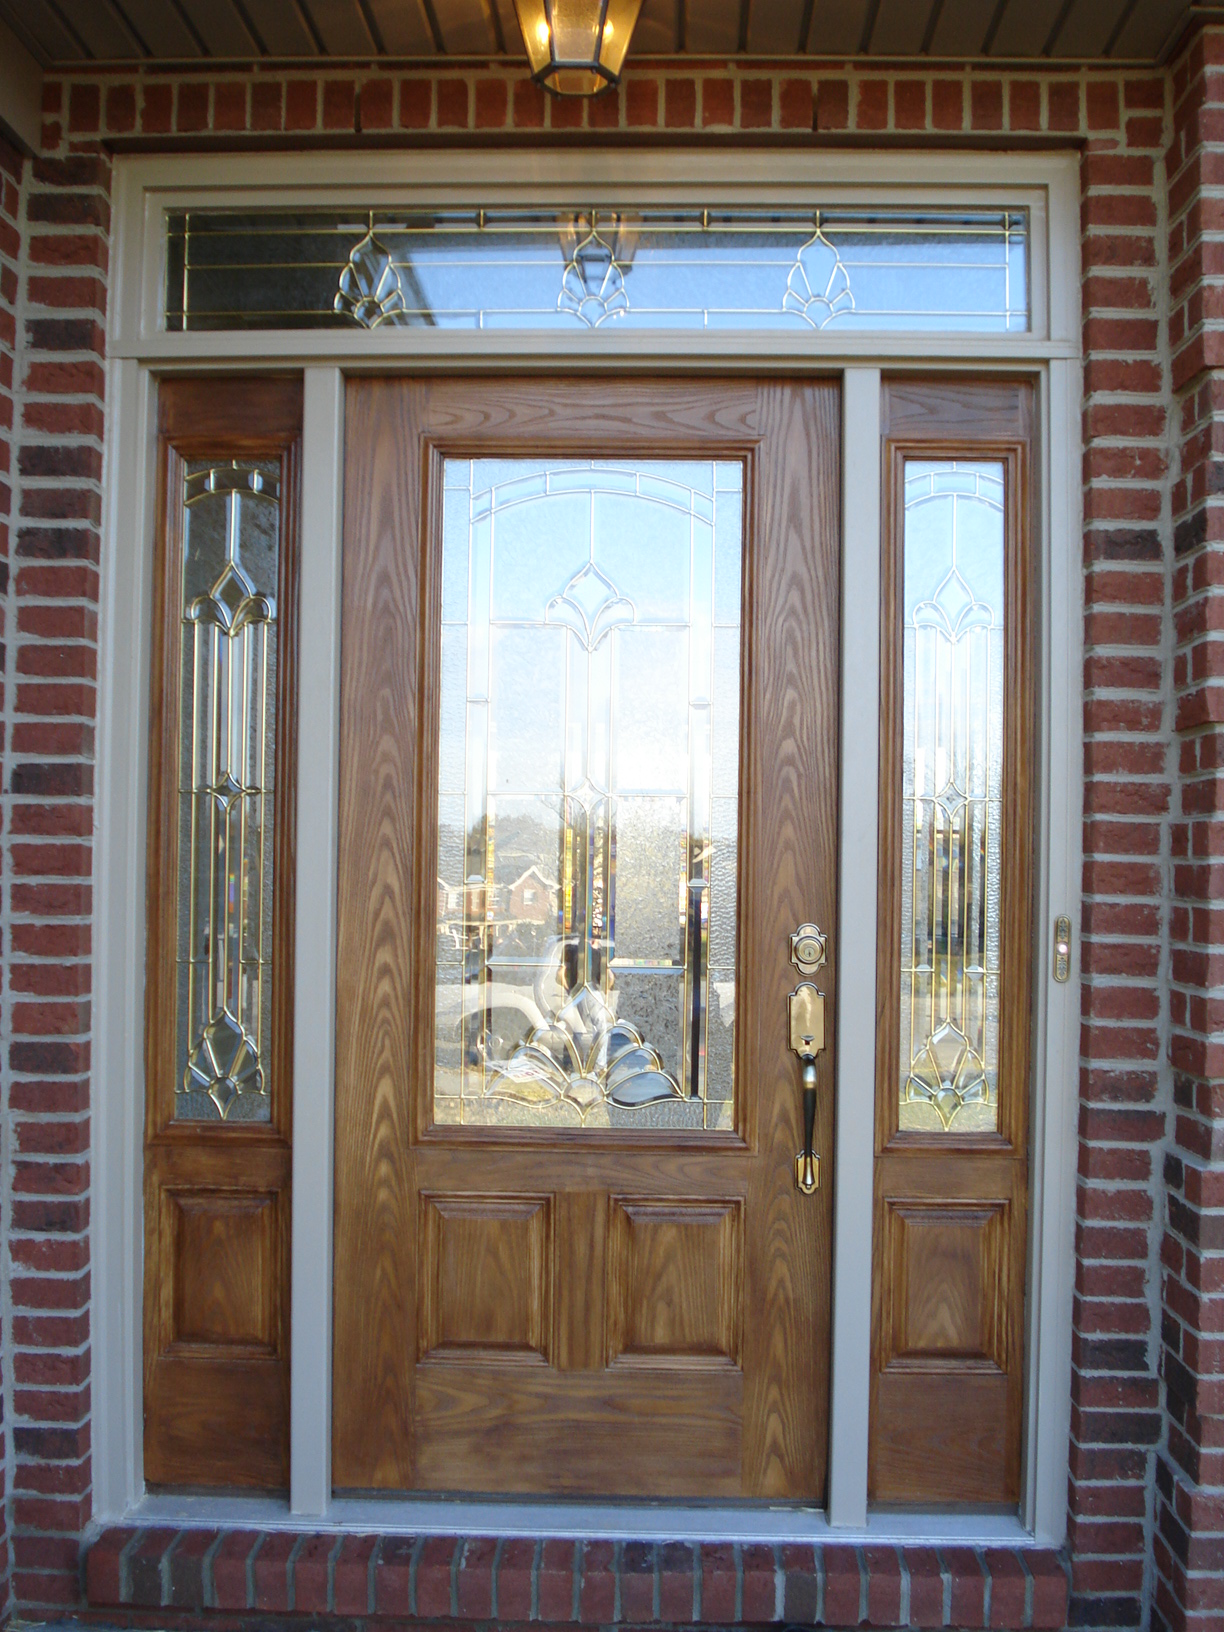 peru therma tru entry doors with golden handle matched with brick wall ideas